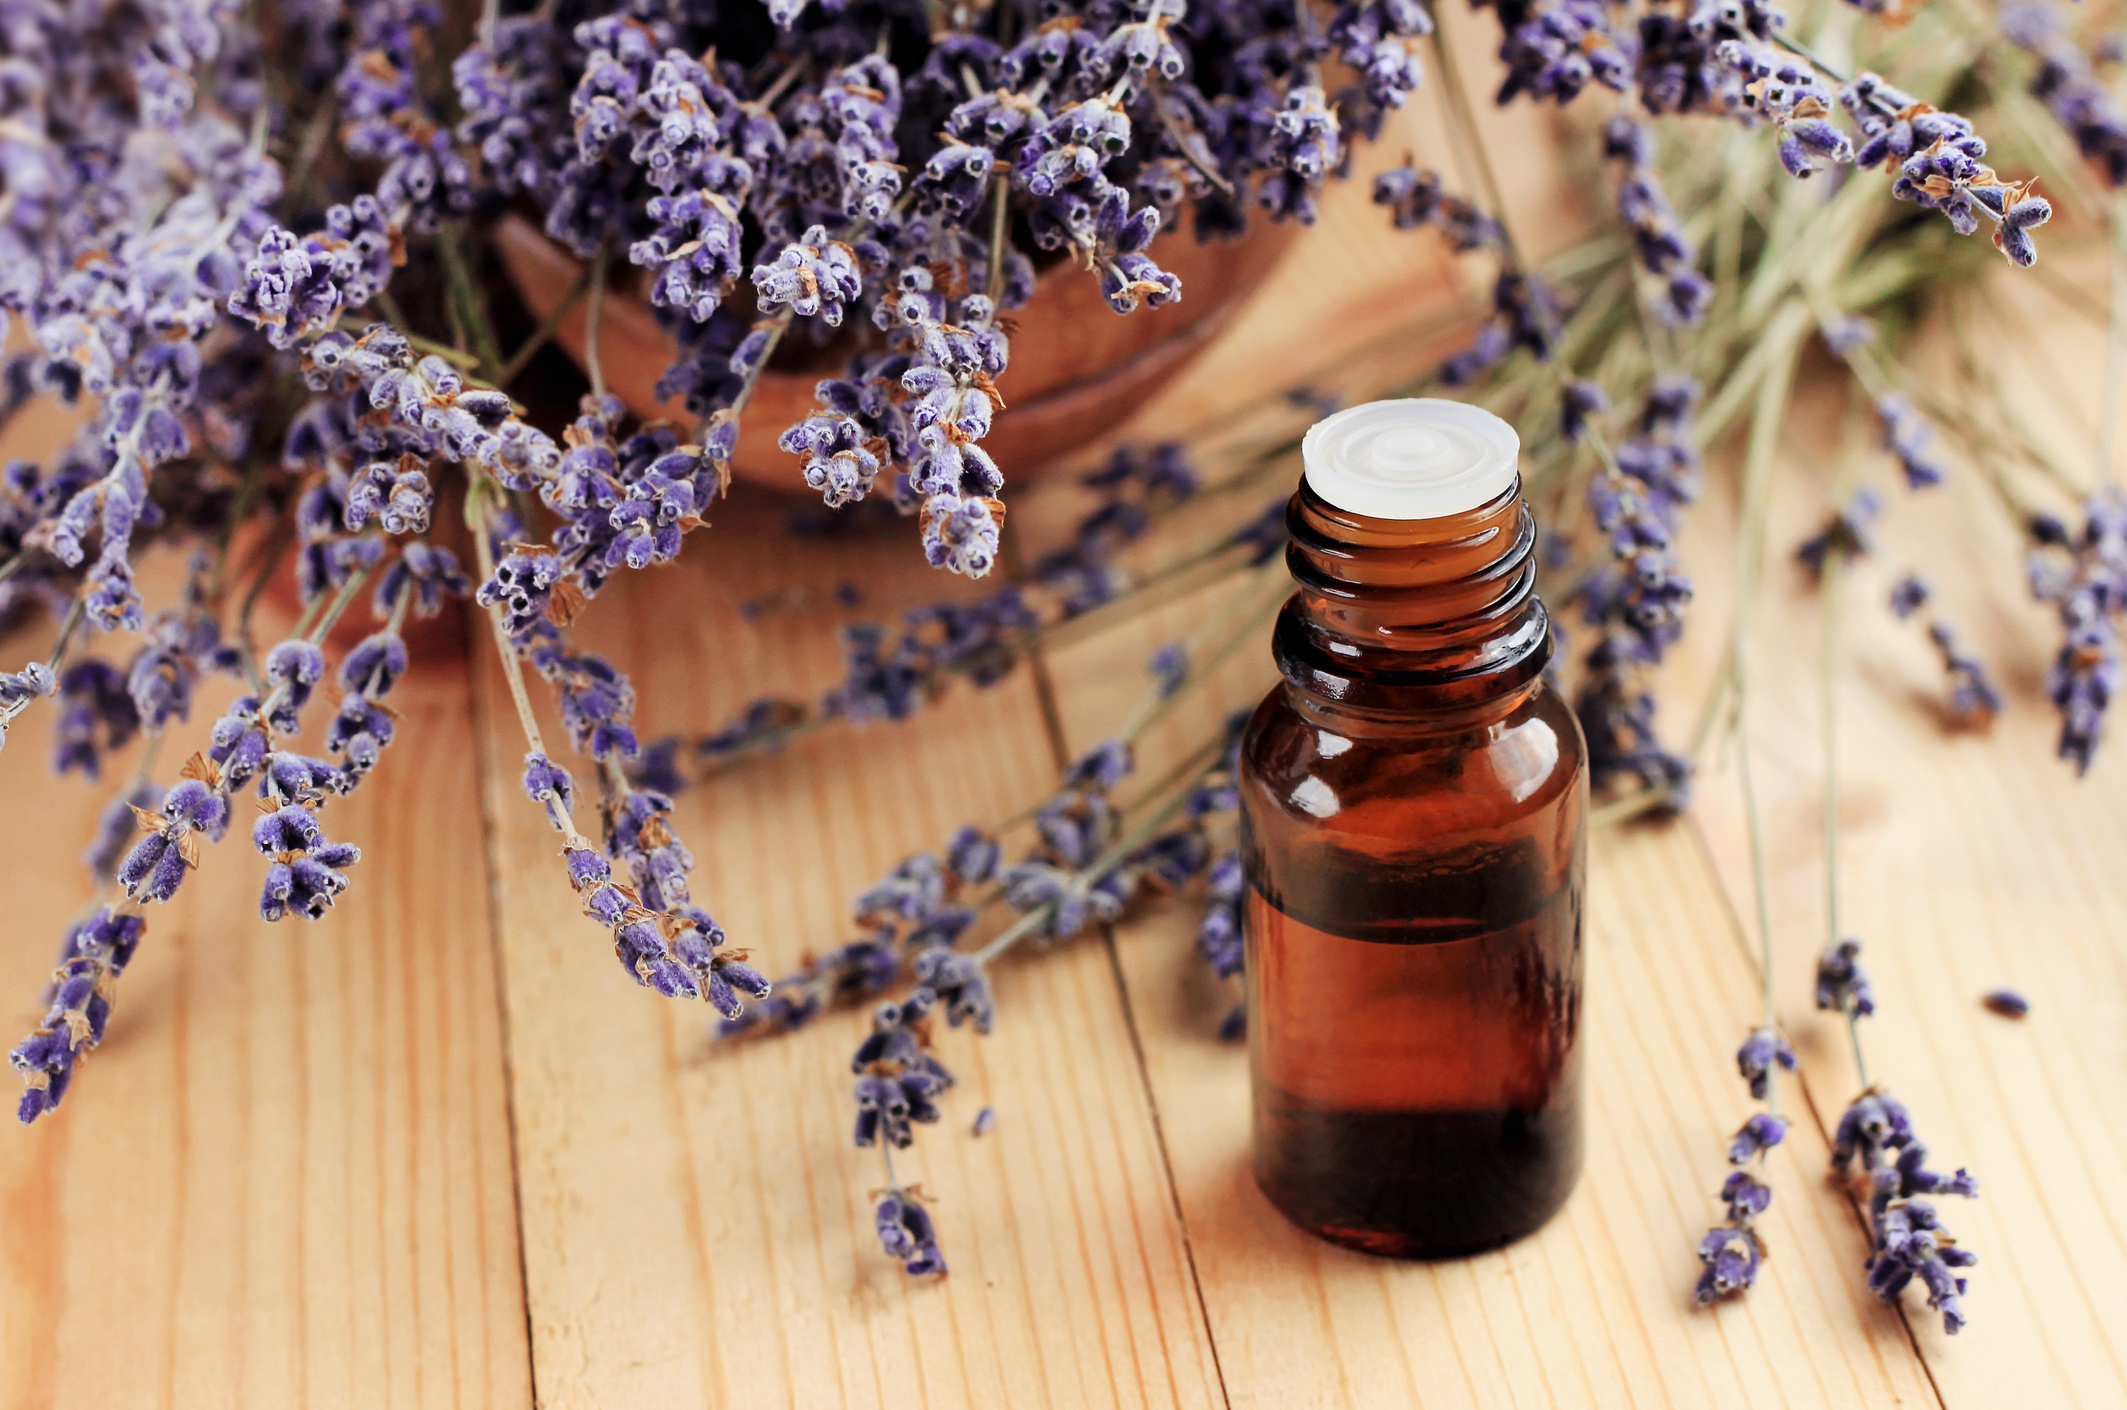 Healing-lavender-essential-oil-for-beauty-treatment-and-home-deodorant-1005549310_2131x1413.jpeg